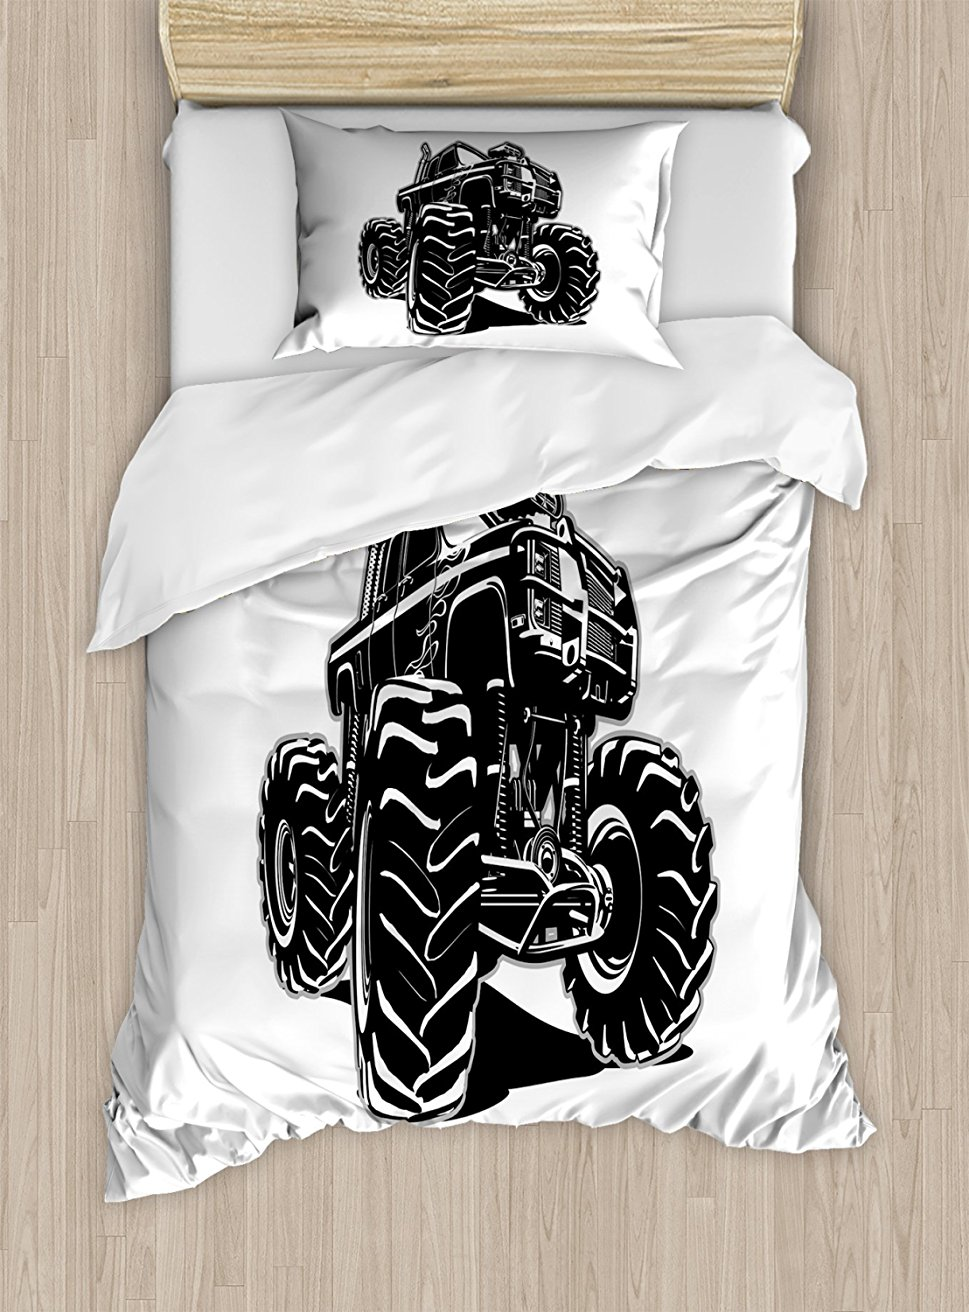 Duvet Cover Set, Modified Automobile Monochrome Sketch Pattern Monster Pickup Truck Off Road Vehicle, 4 Piece Bedding Set